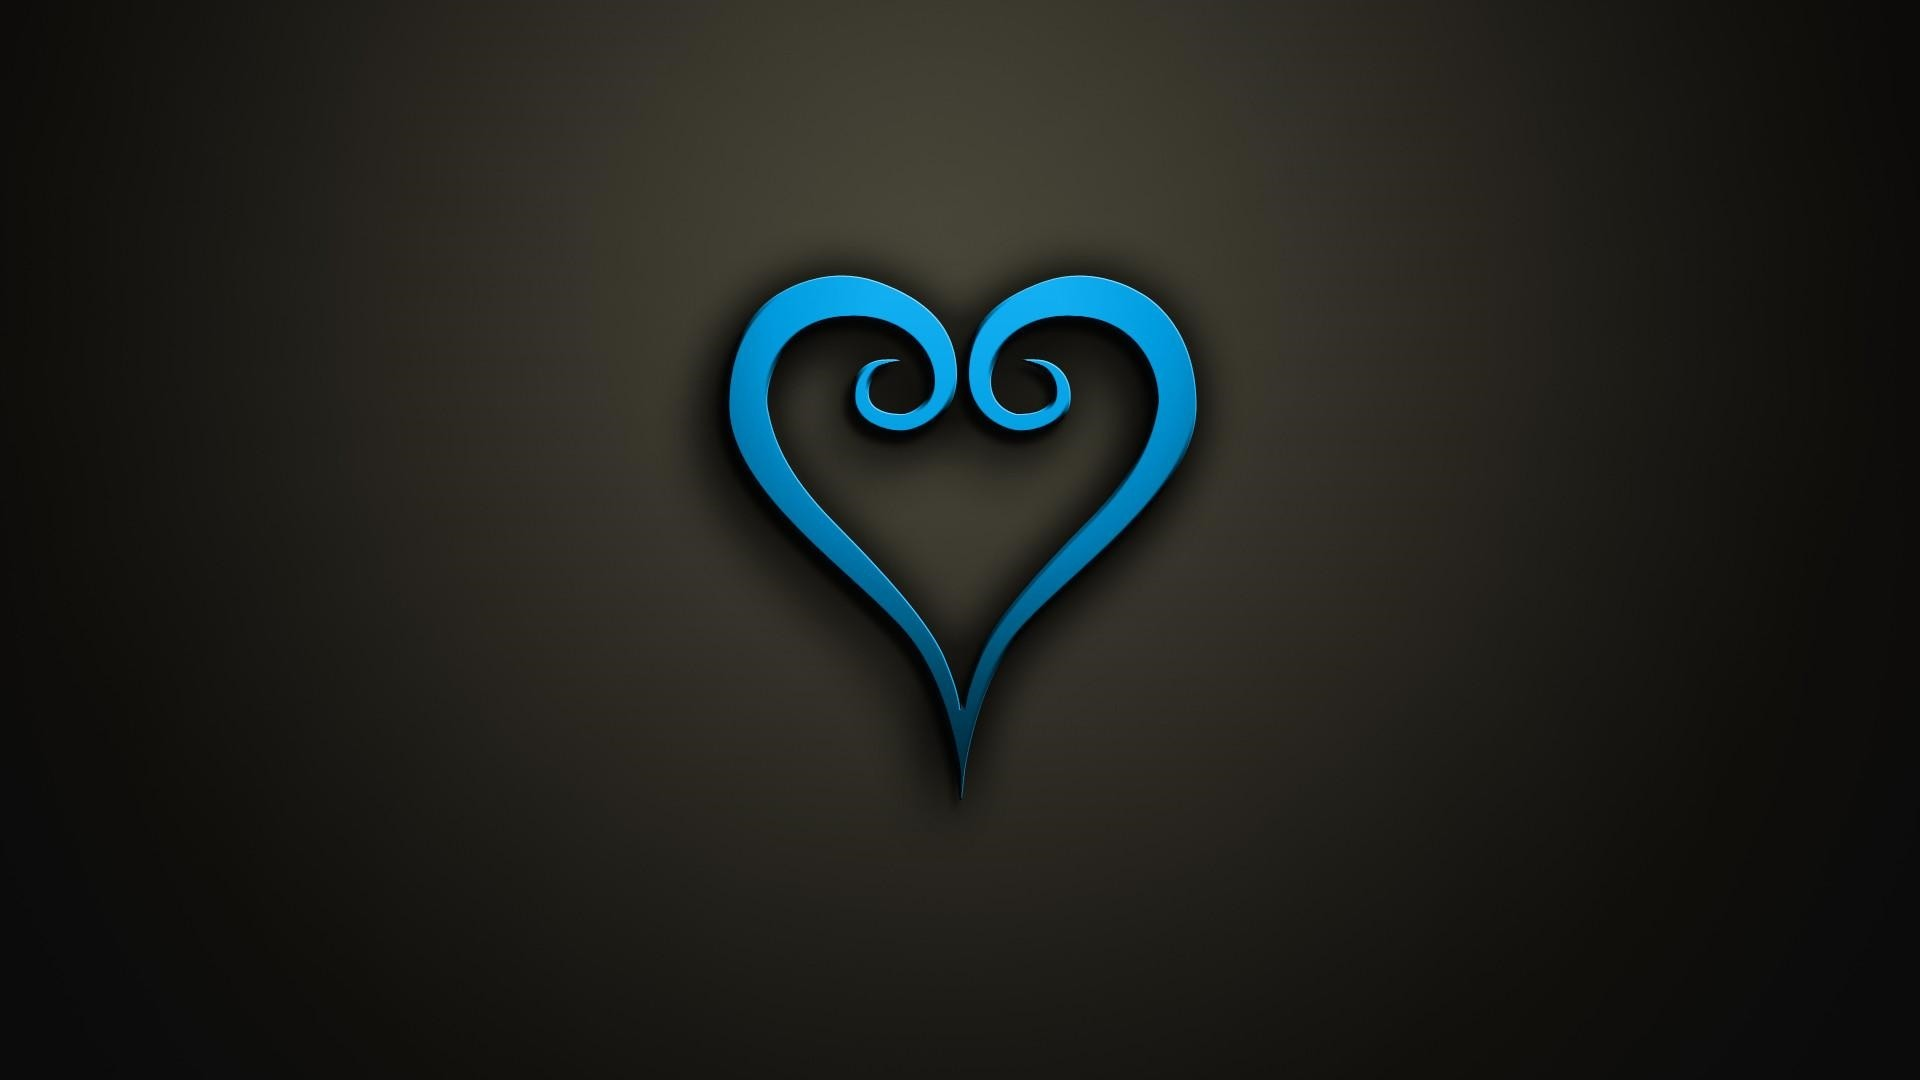 1920x1080 ... kingdom_hearts_hd_wallpapers_016 Kingdom Hearts Iphone Wallpaper  kingdom hearts iphone wallpaper9 ...